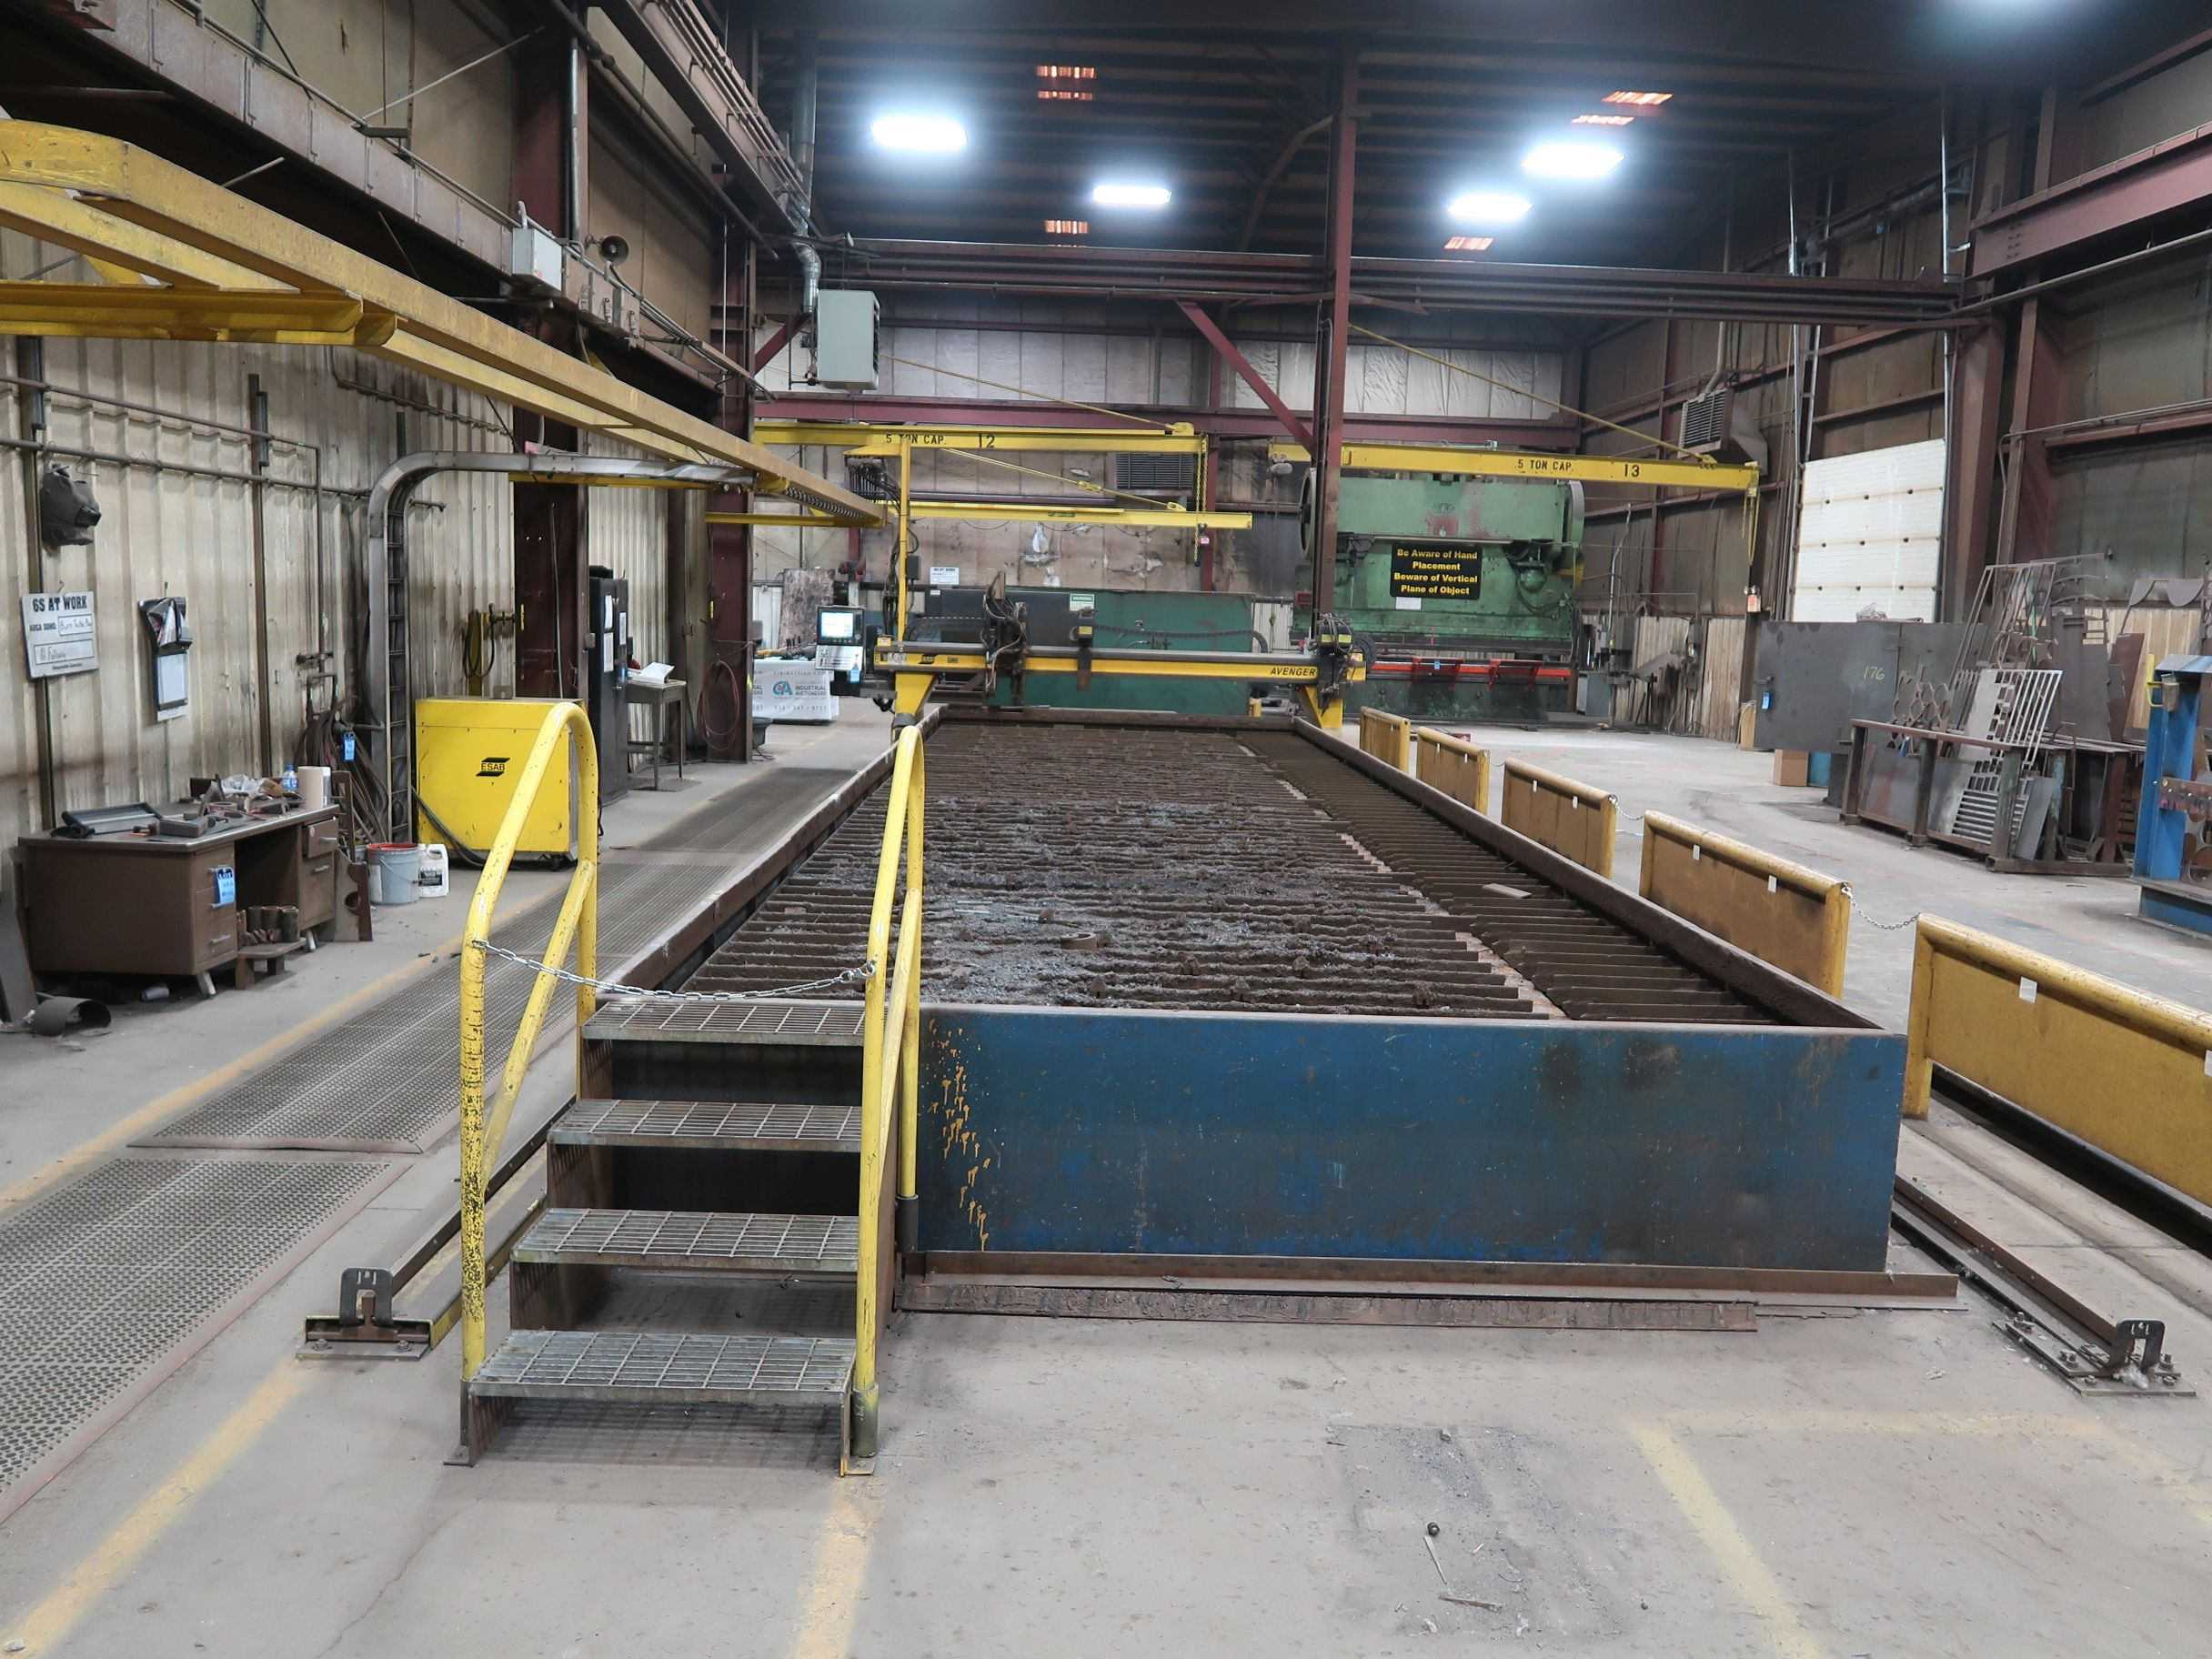 12' X 40' ESAB MODEL AVENGER 1-12 VISION PLASMA TABLE W/ BURNY 10 CONTROL; S/N 0560986386, UPDATED - Image 2 of 23